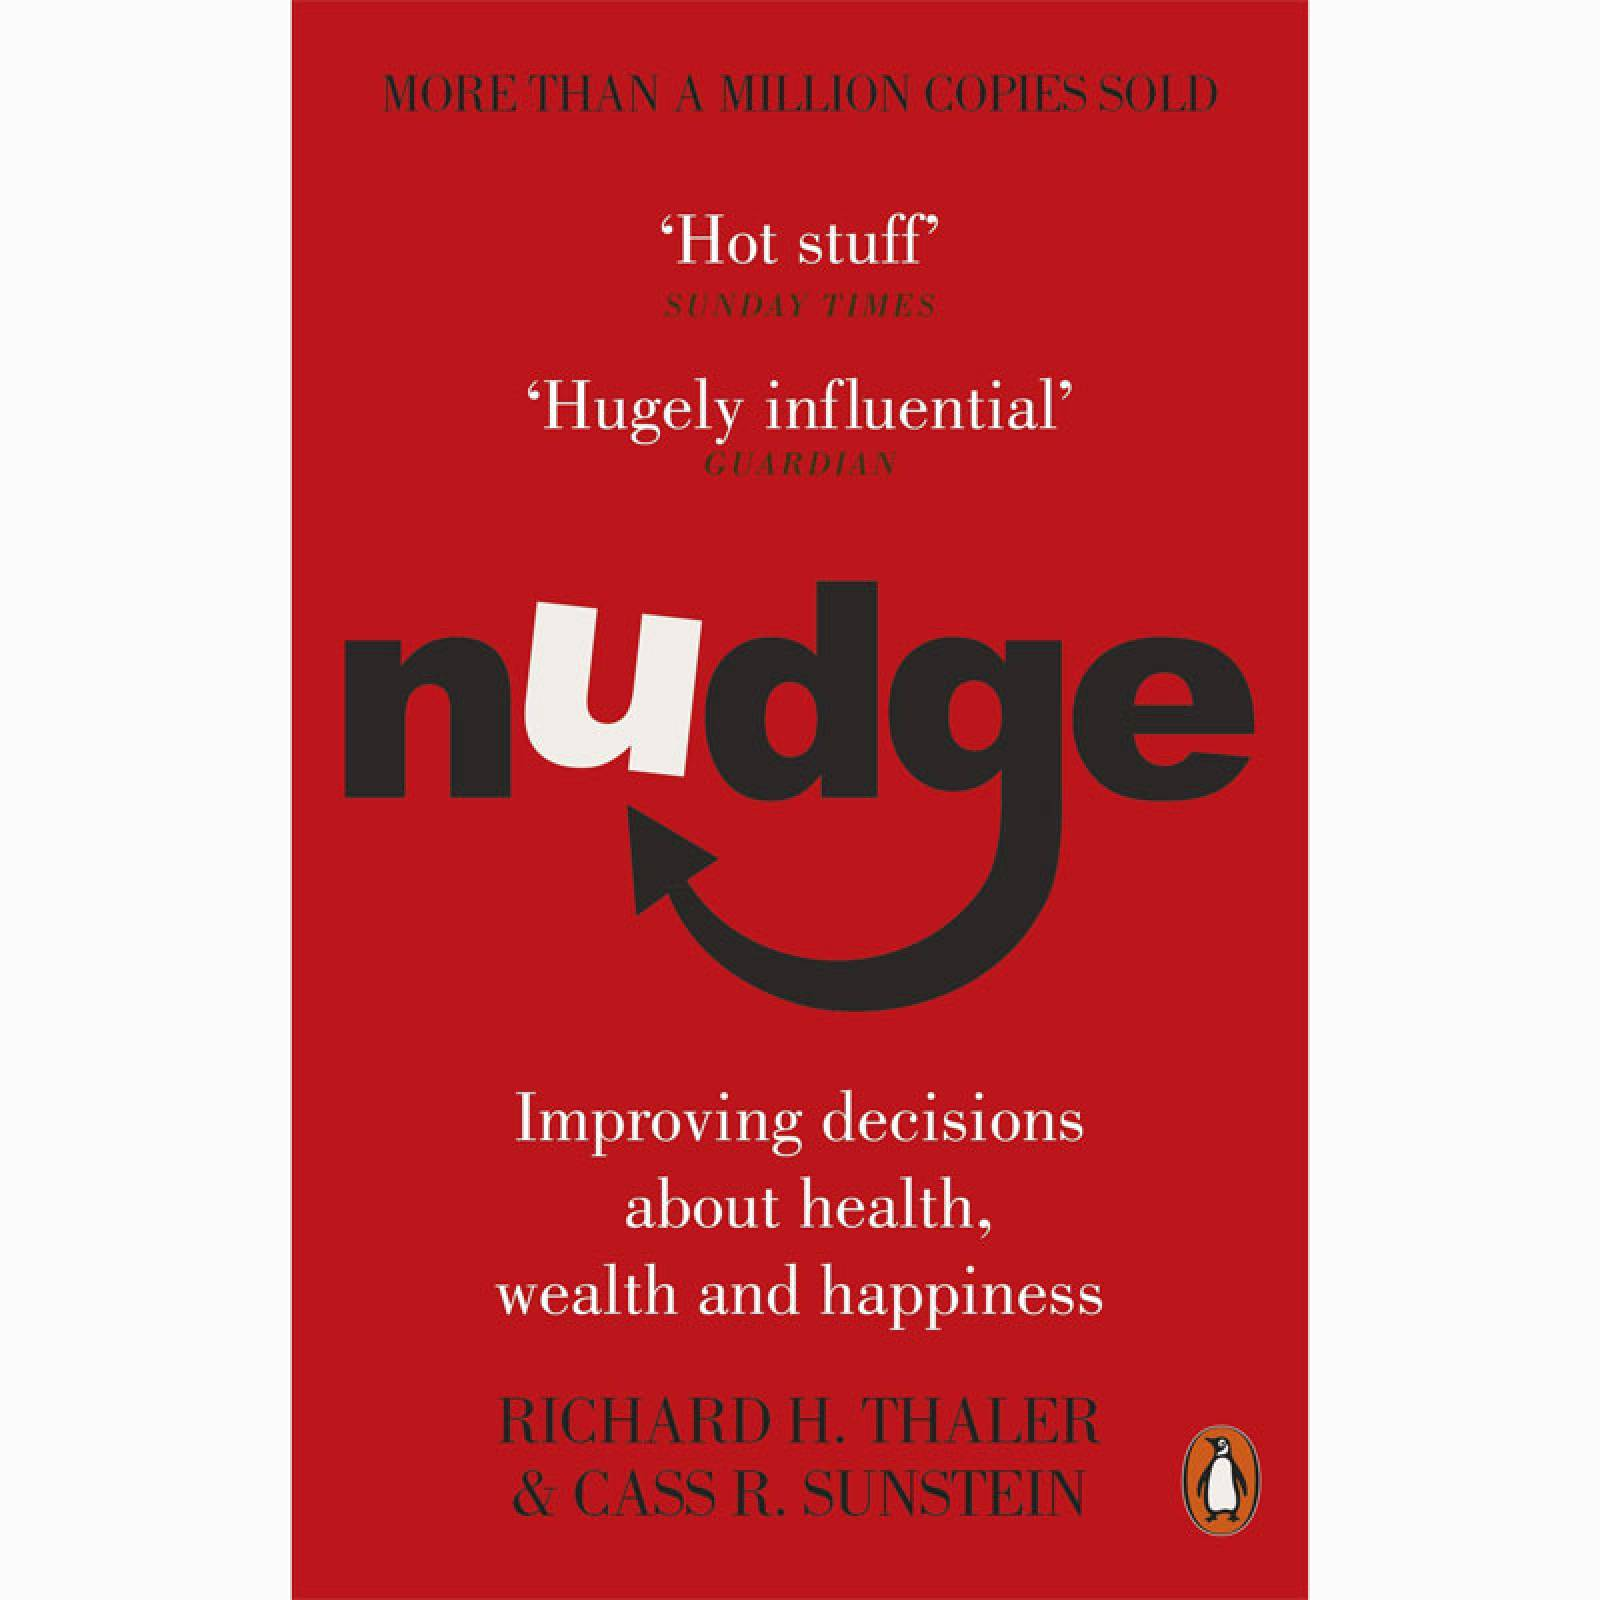 Nudge: Improving Decisions - Paperback Book